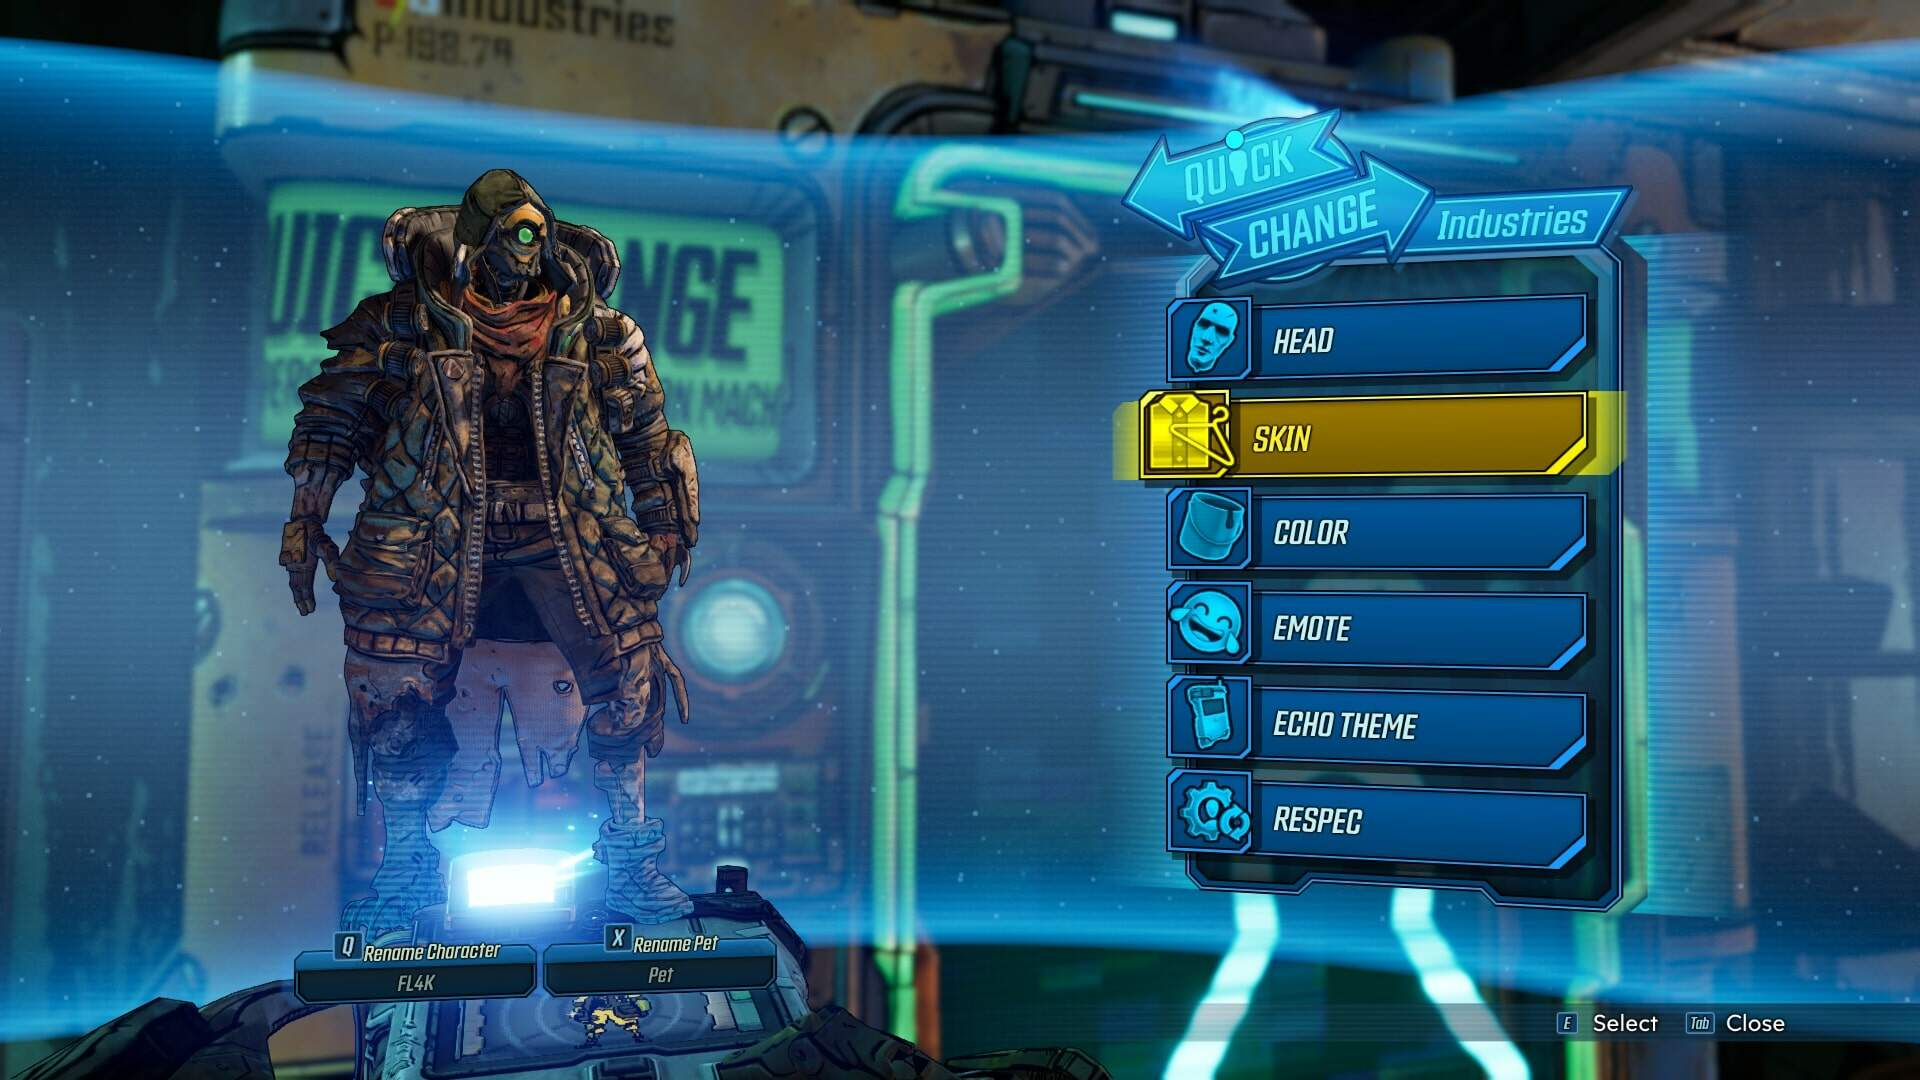 Borderlands 3 Character Customization: Character Skins, How to Change Appearance